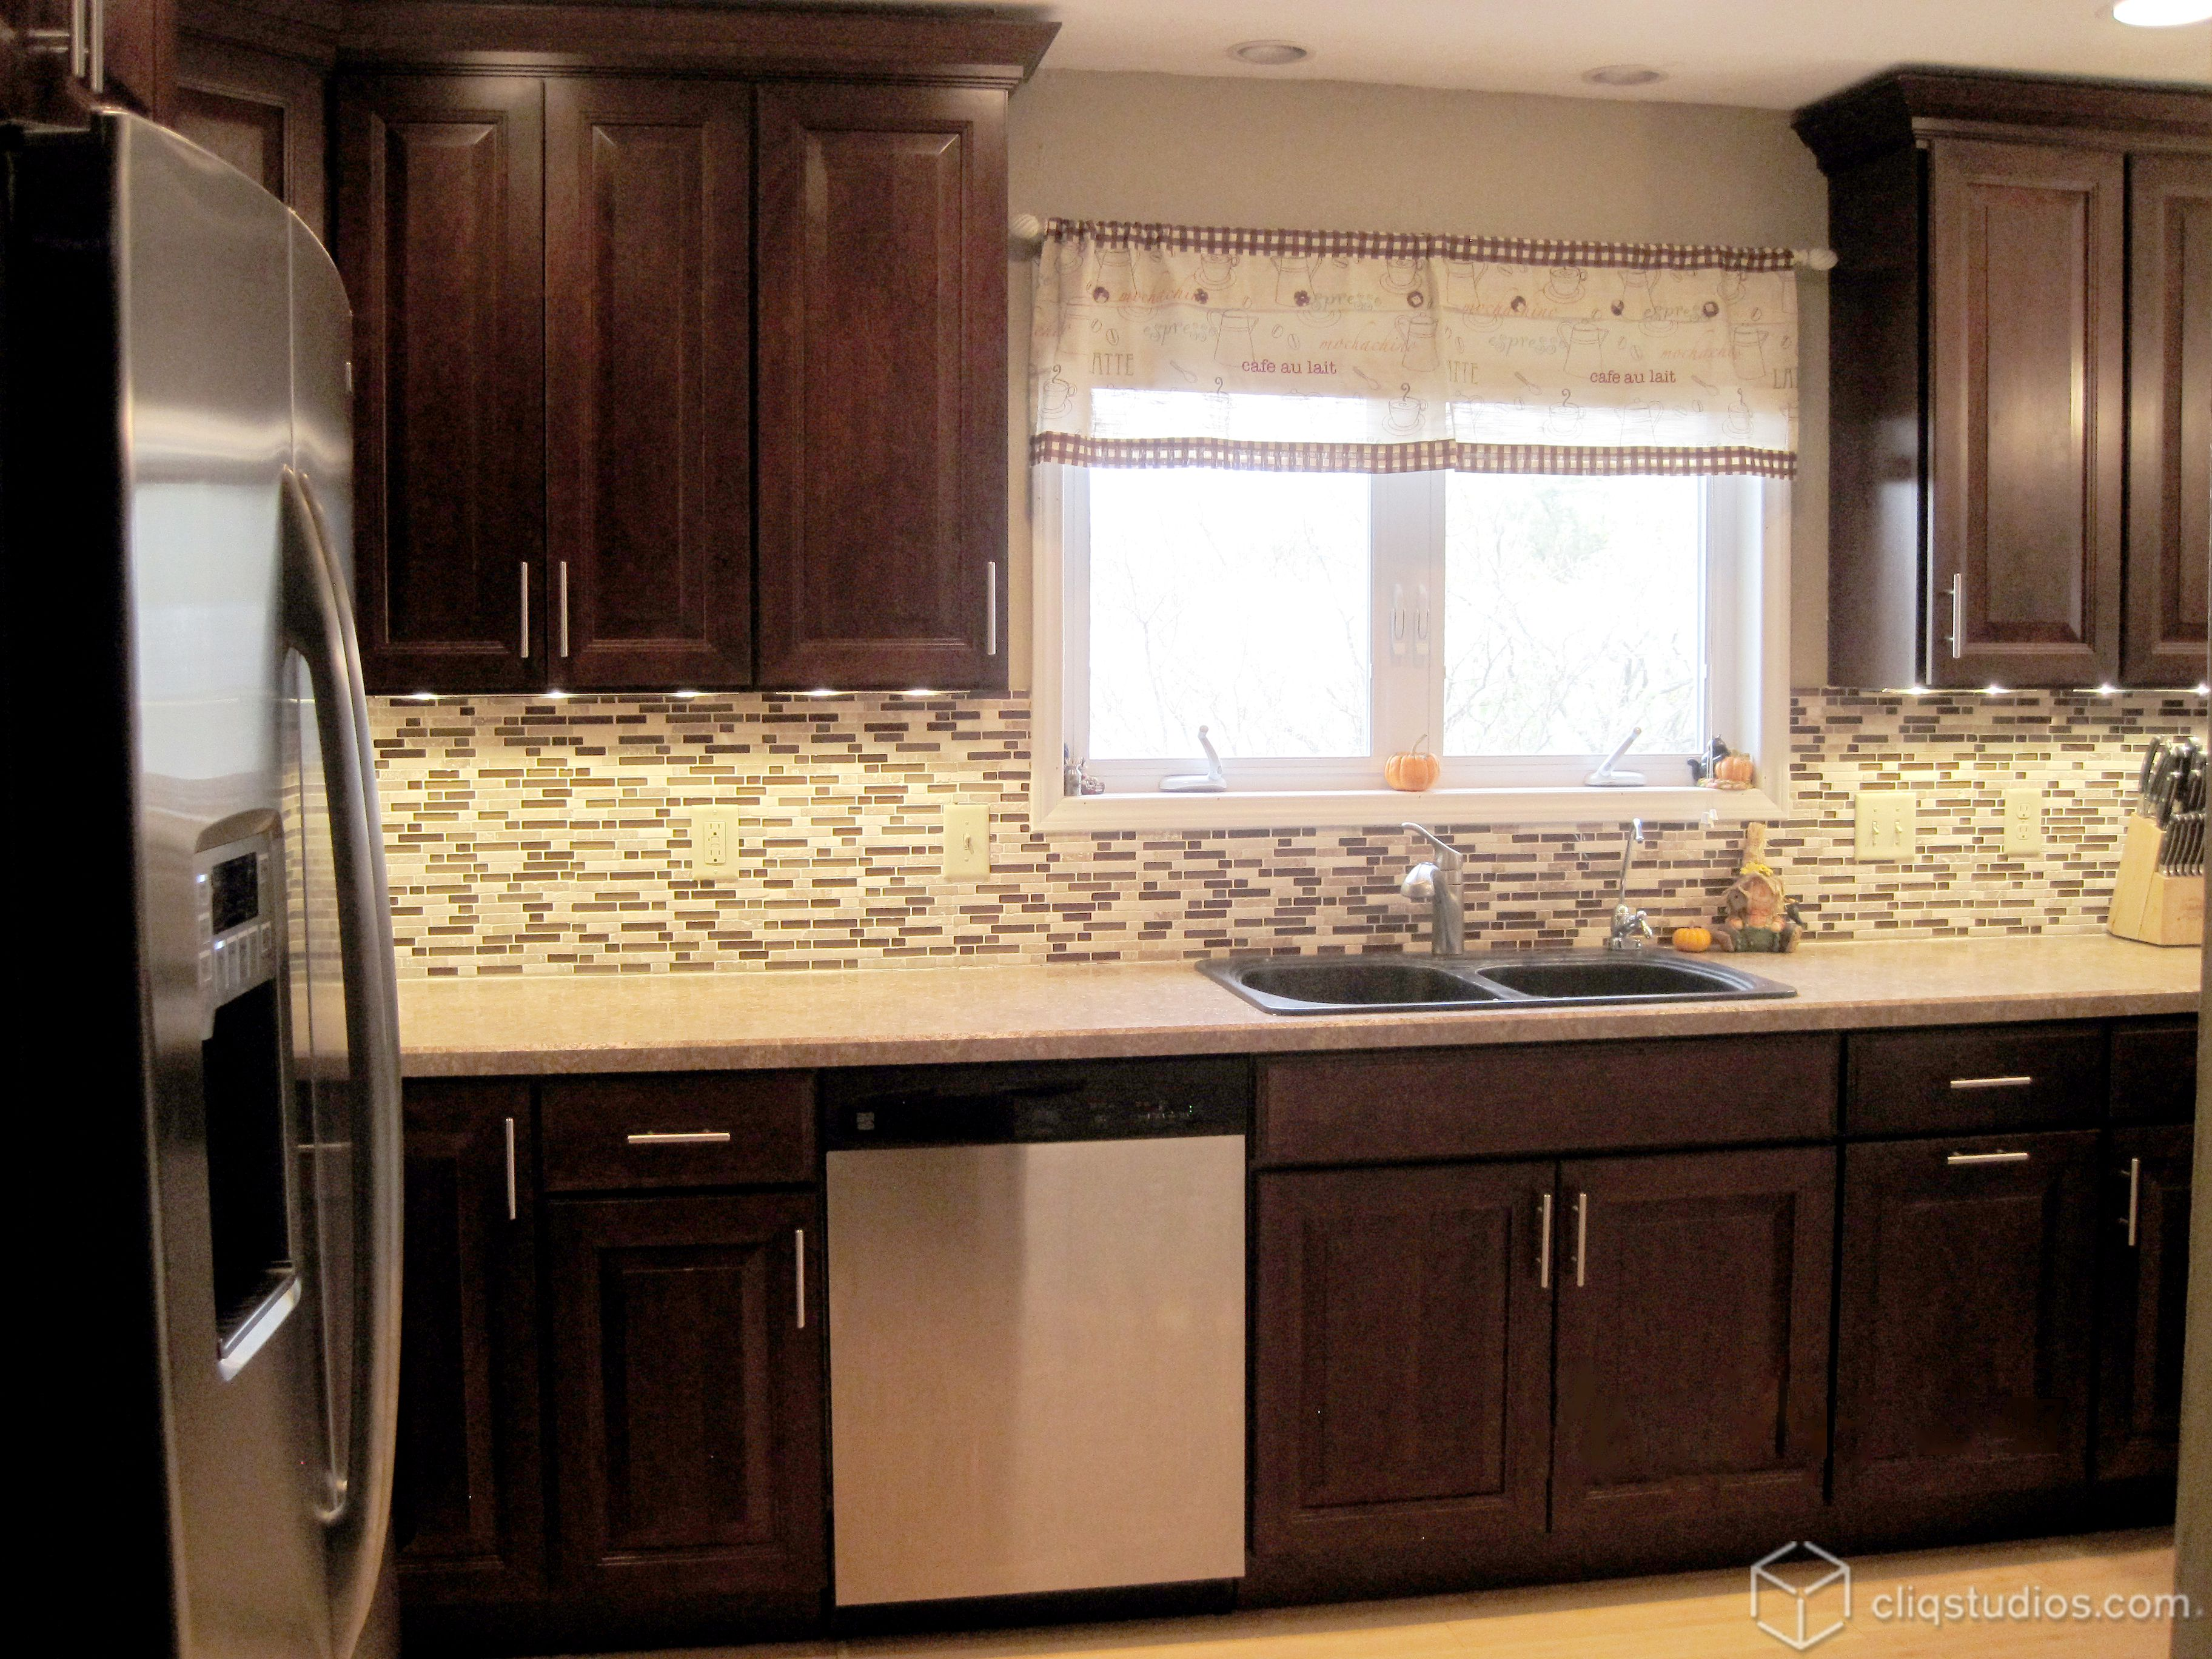 The Carlton kitchen cabinets in Cherry Russet